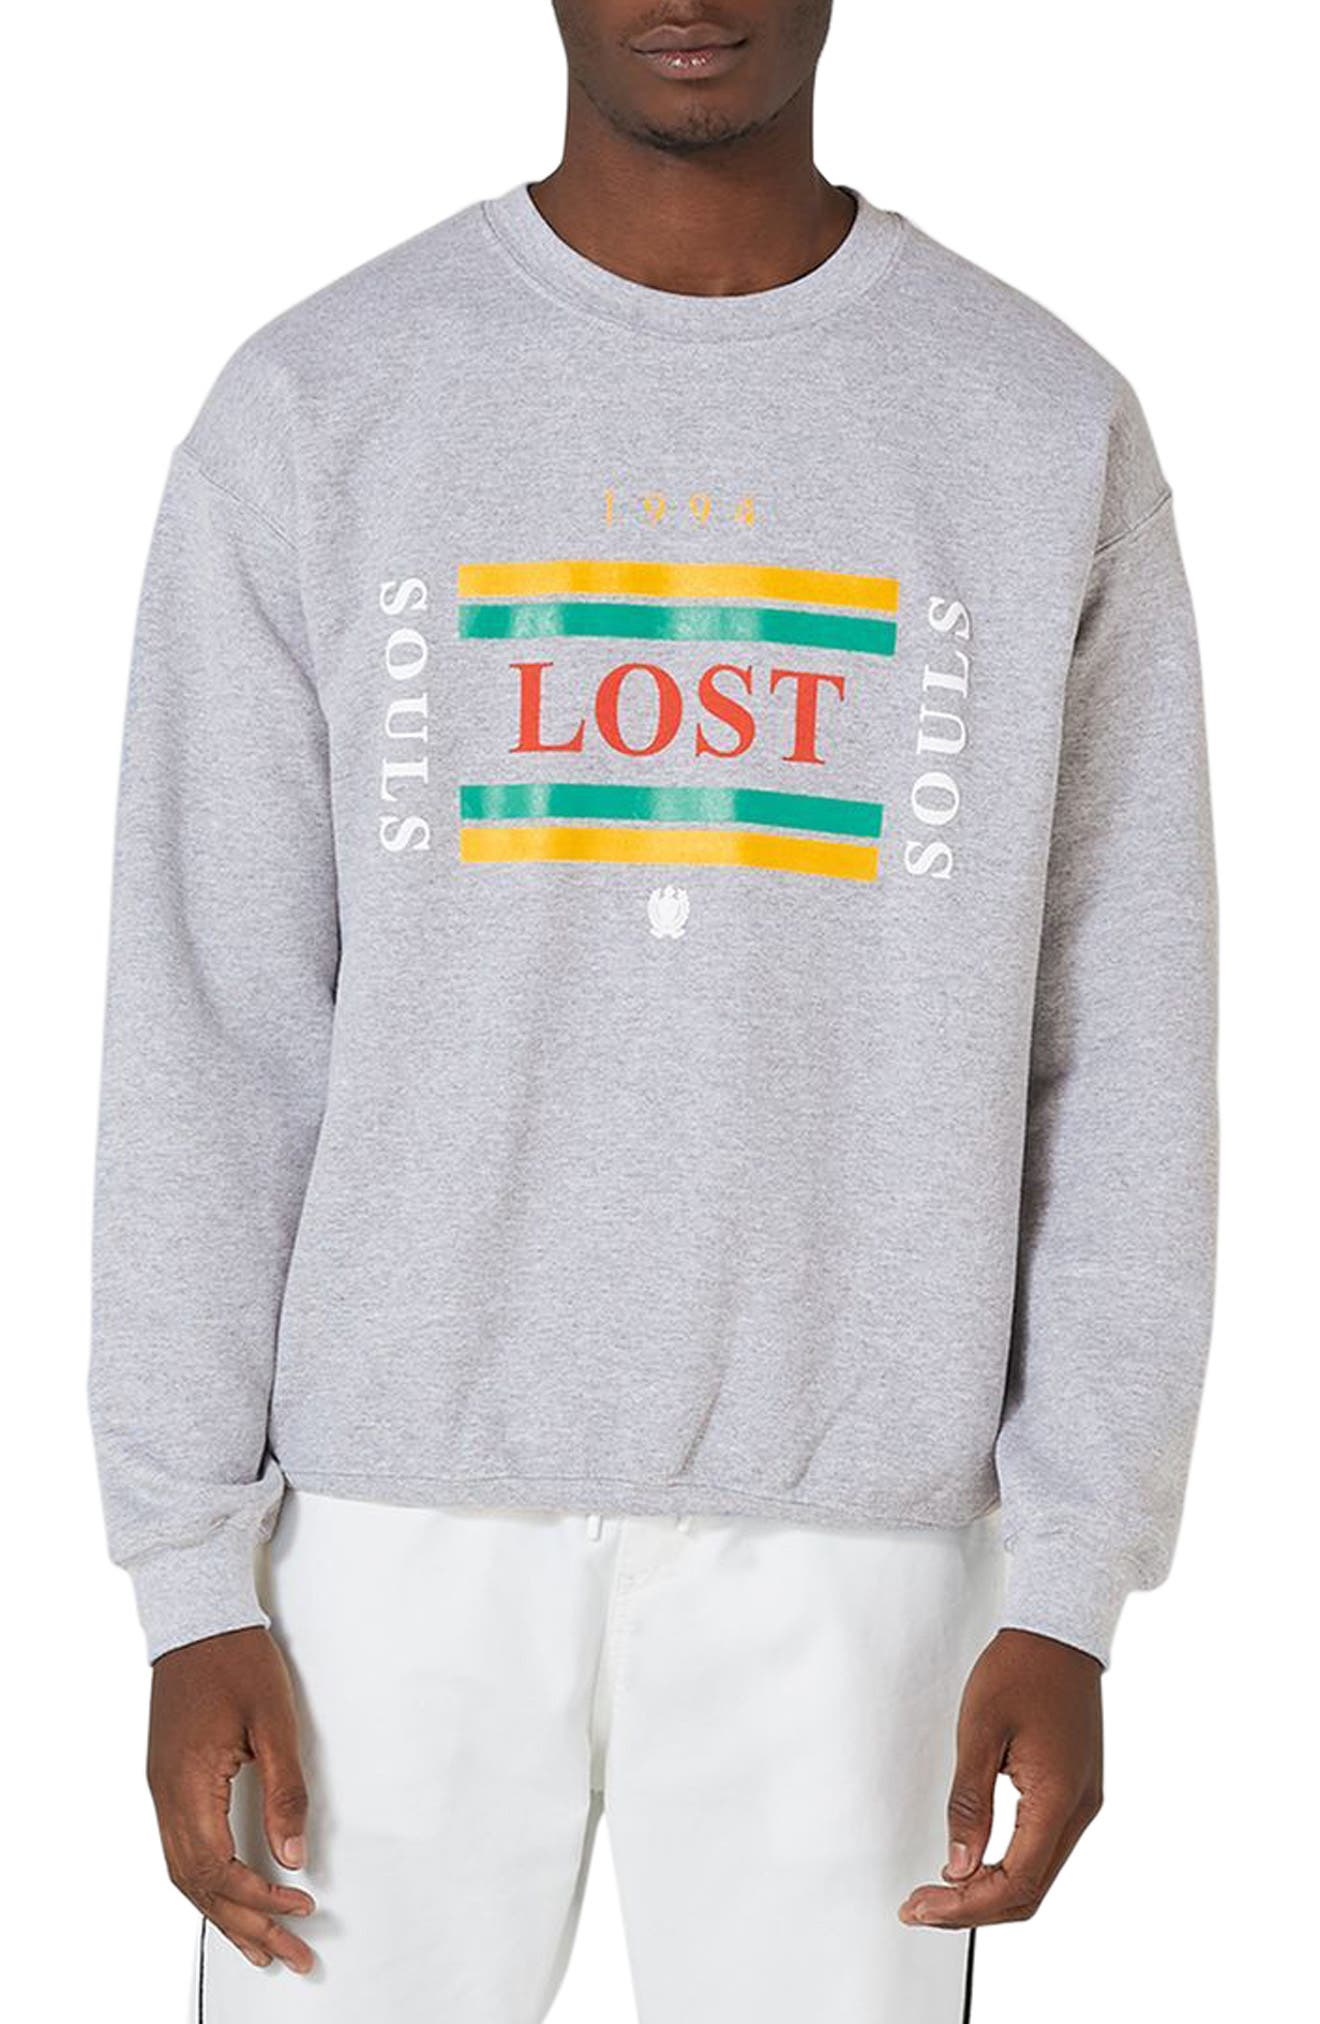 Topman Lost Souls Graphic Sweatshirt